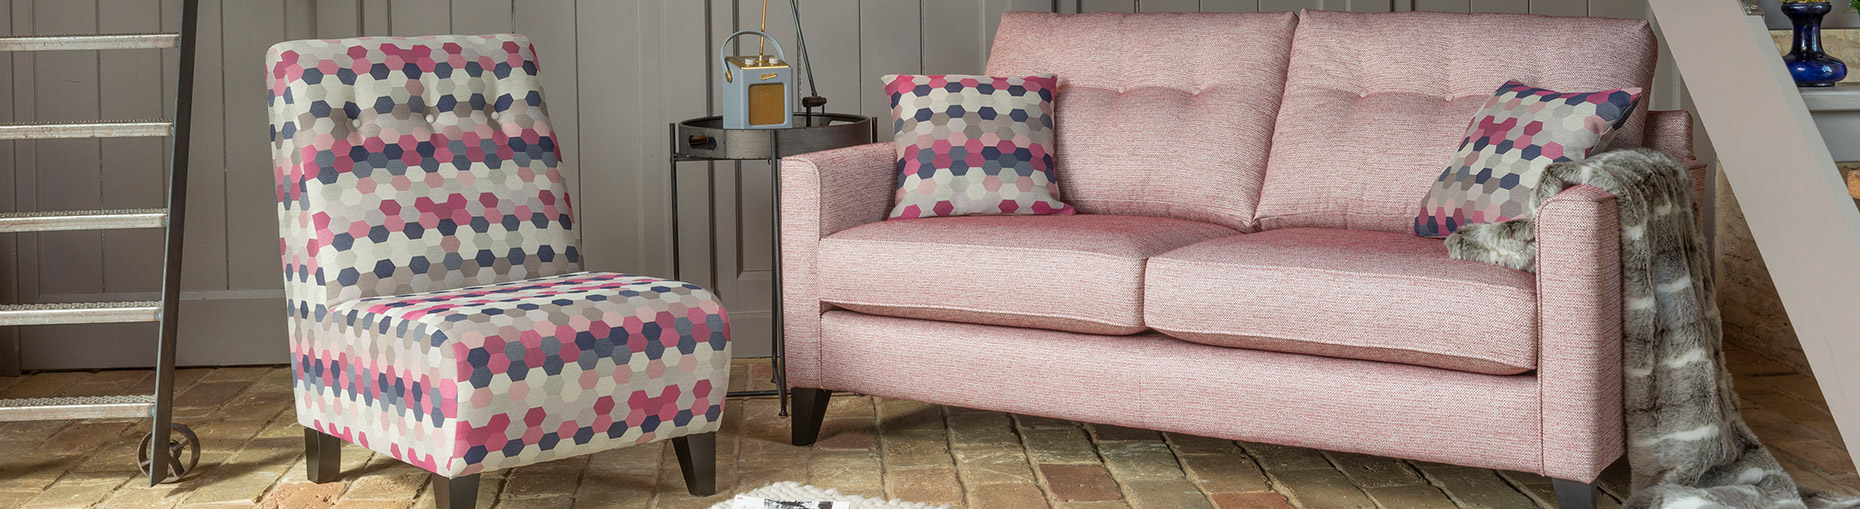 Lexi sofa collection at Forrest Furnishing